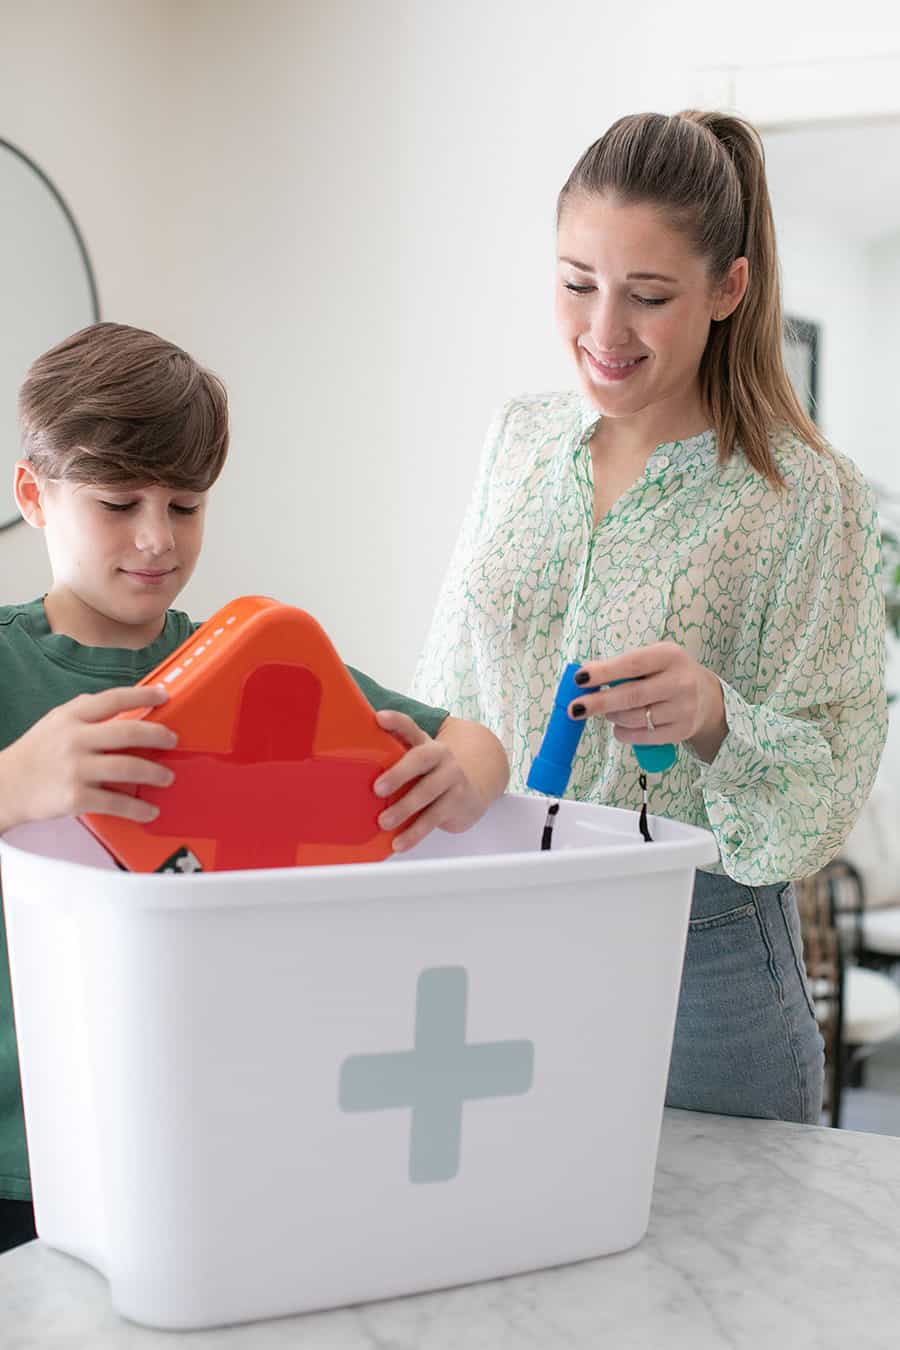 Eden Passante and son adding items into a bin to create a family emergency kit.